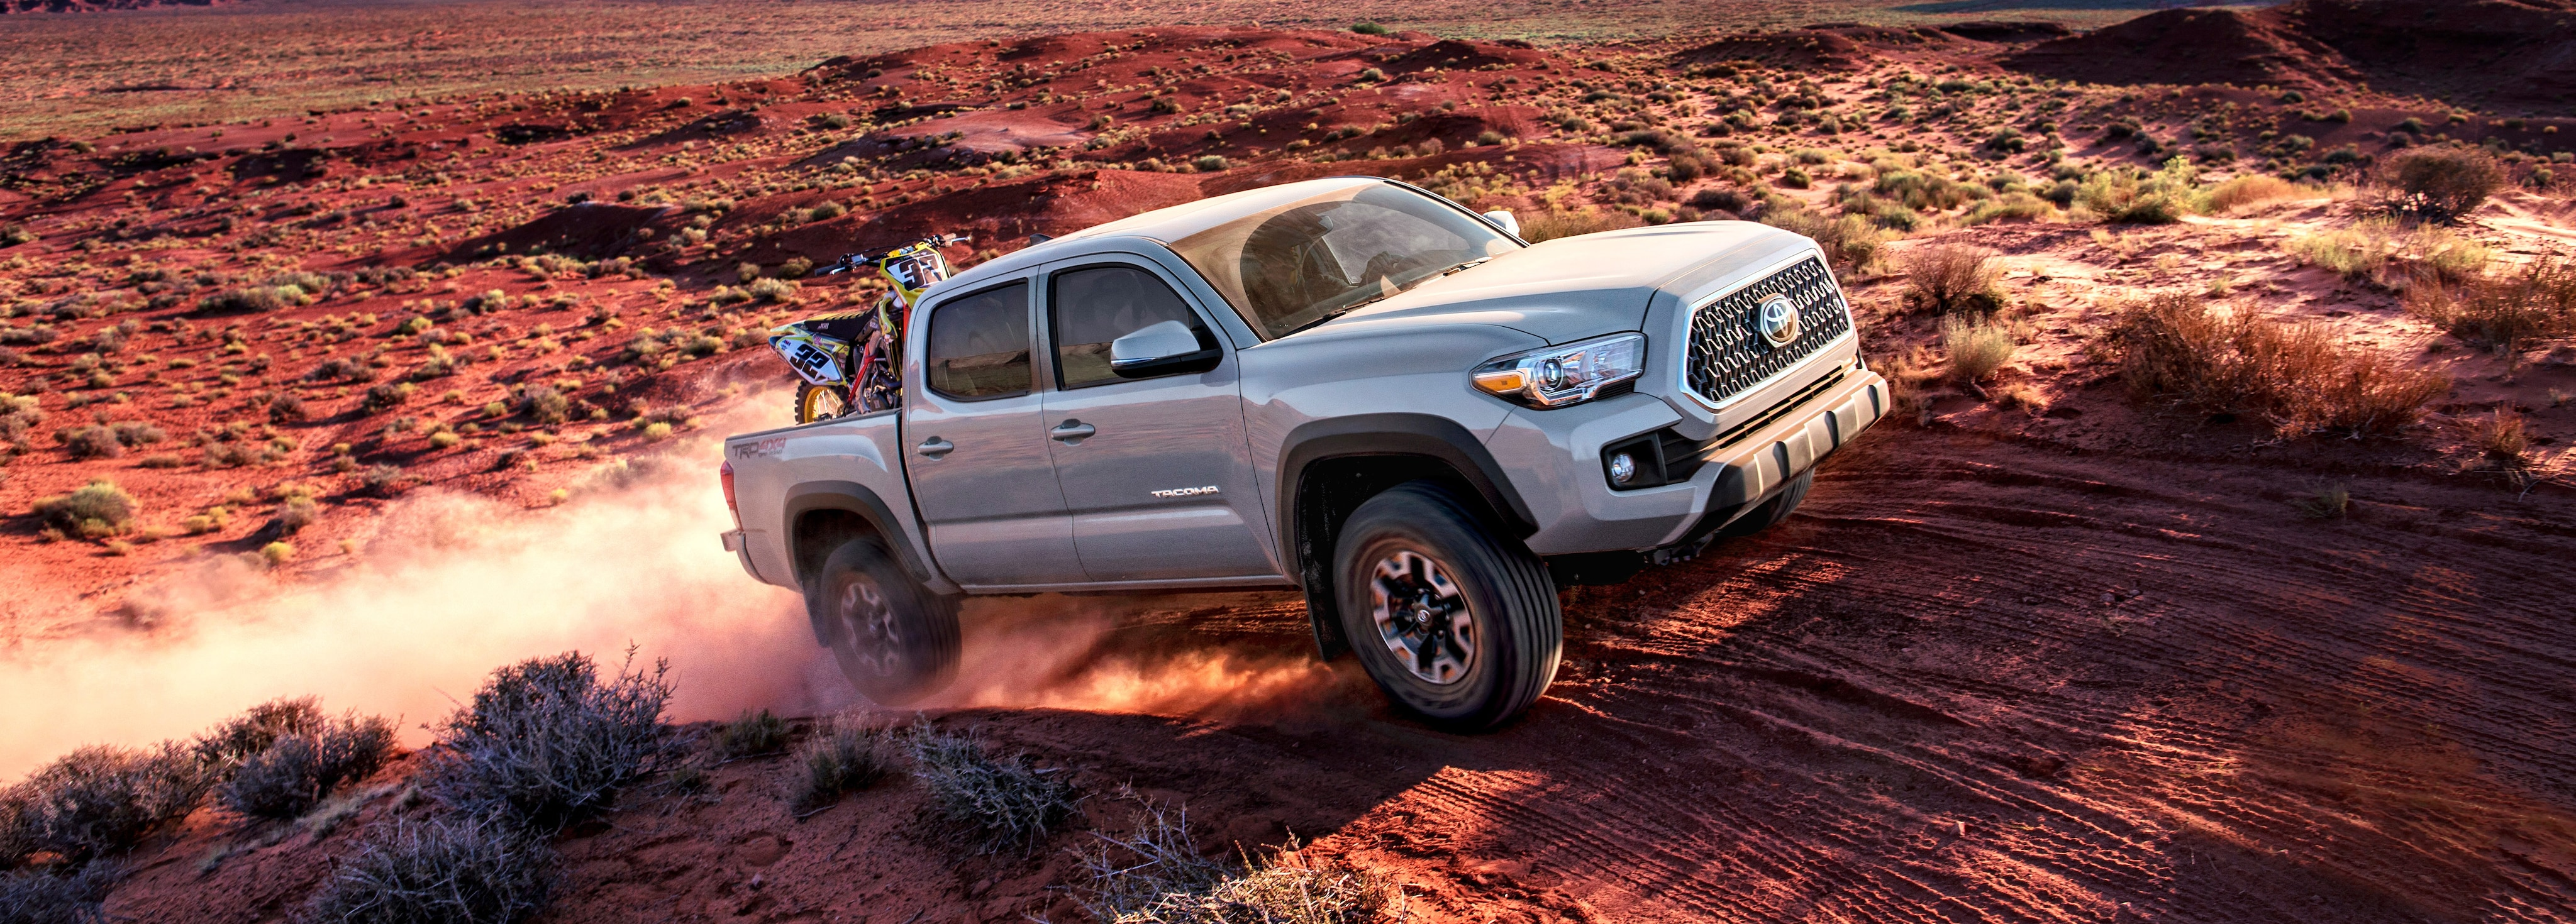 2018 Toyota Tacoma off-roading and hauling dirt bikes